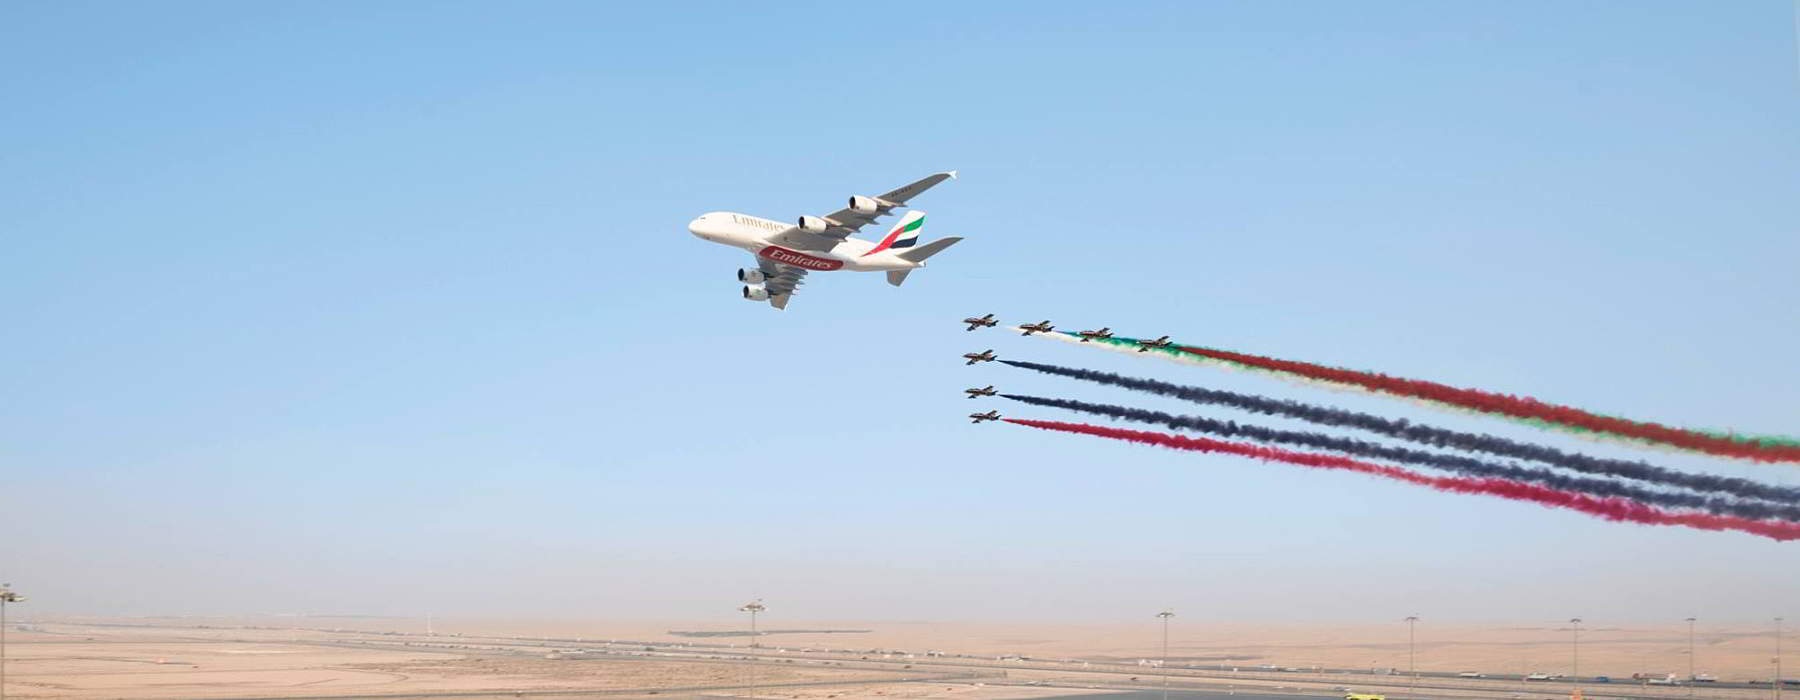 Dubai festivals air show